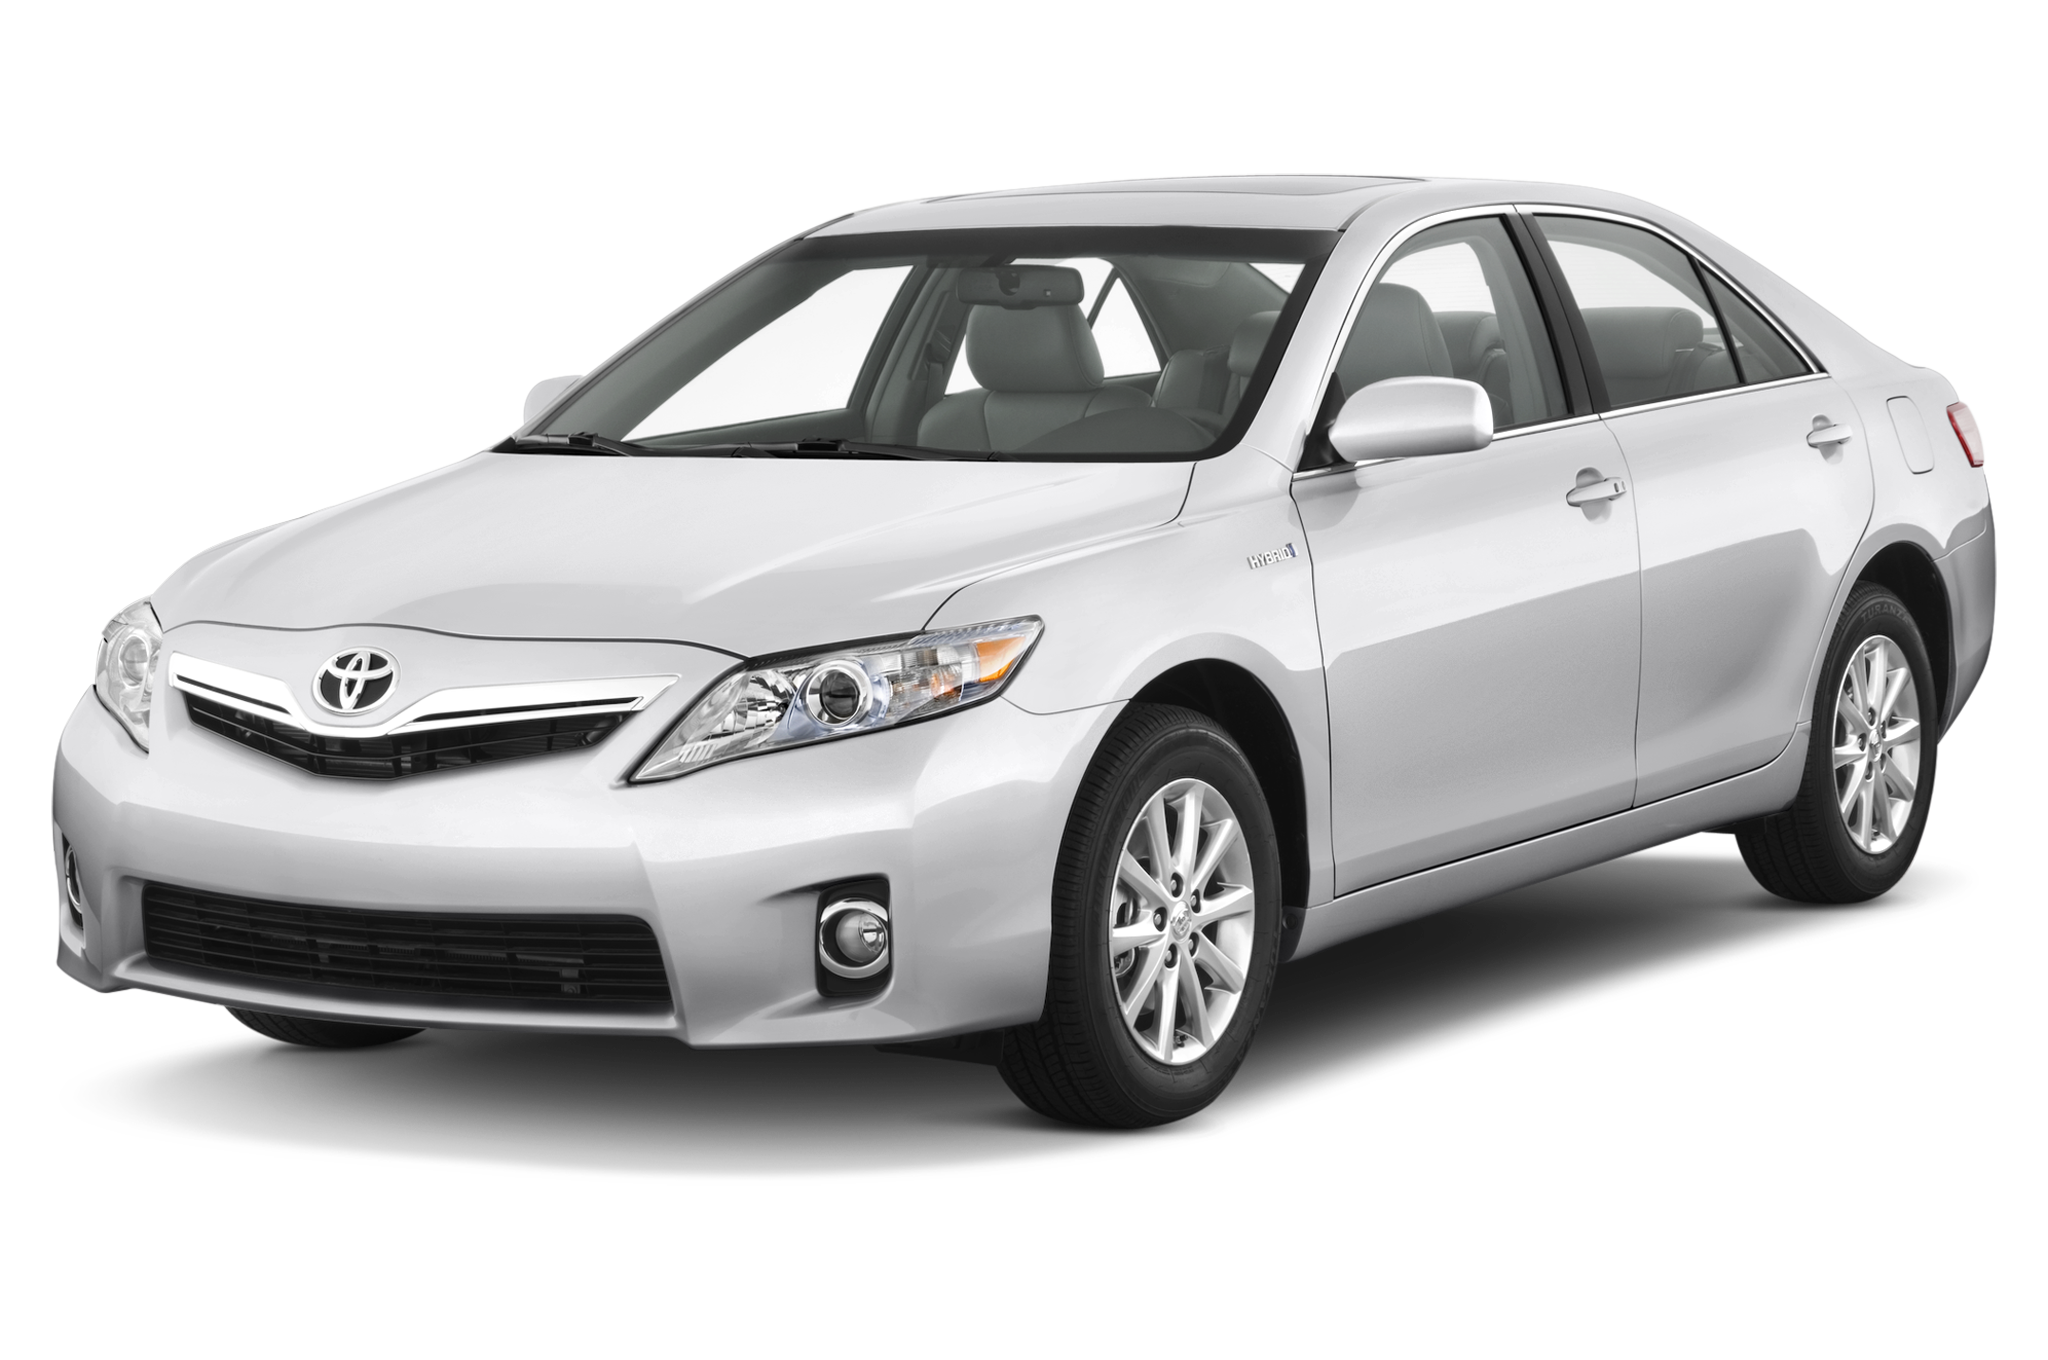 2010 toyota camry hybrid toyota hybrid sedan review. Black Bedroom Furniture Sets. Home Design Ideas